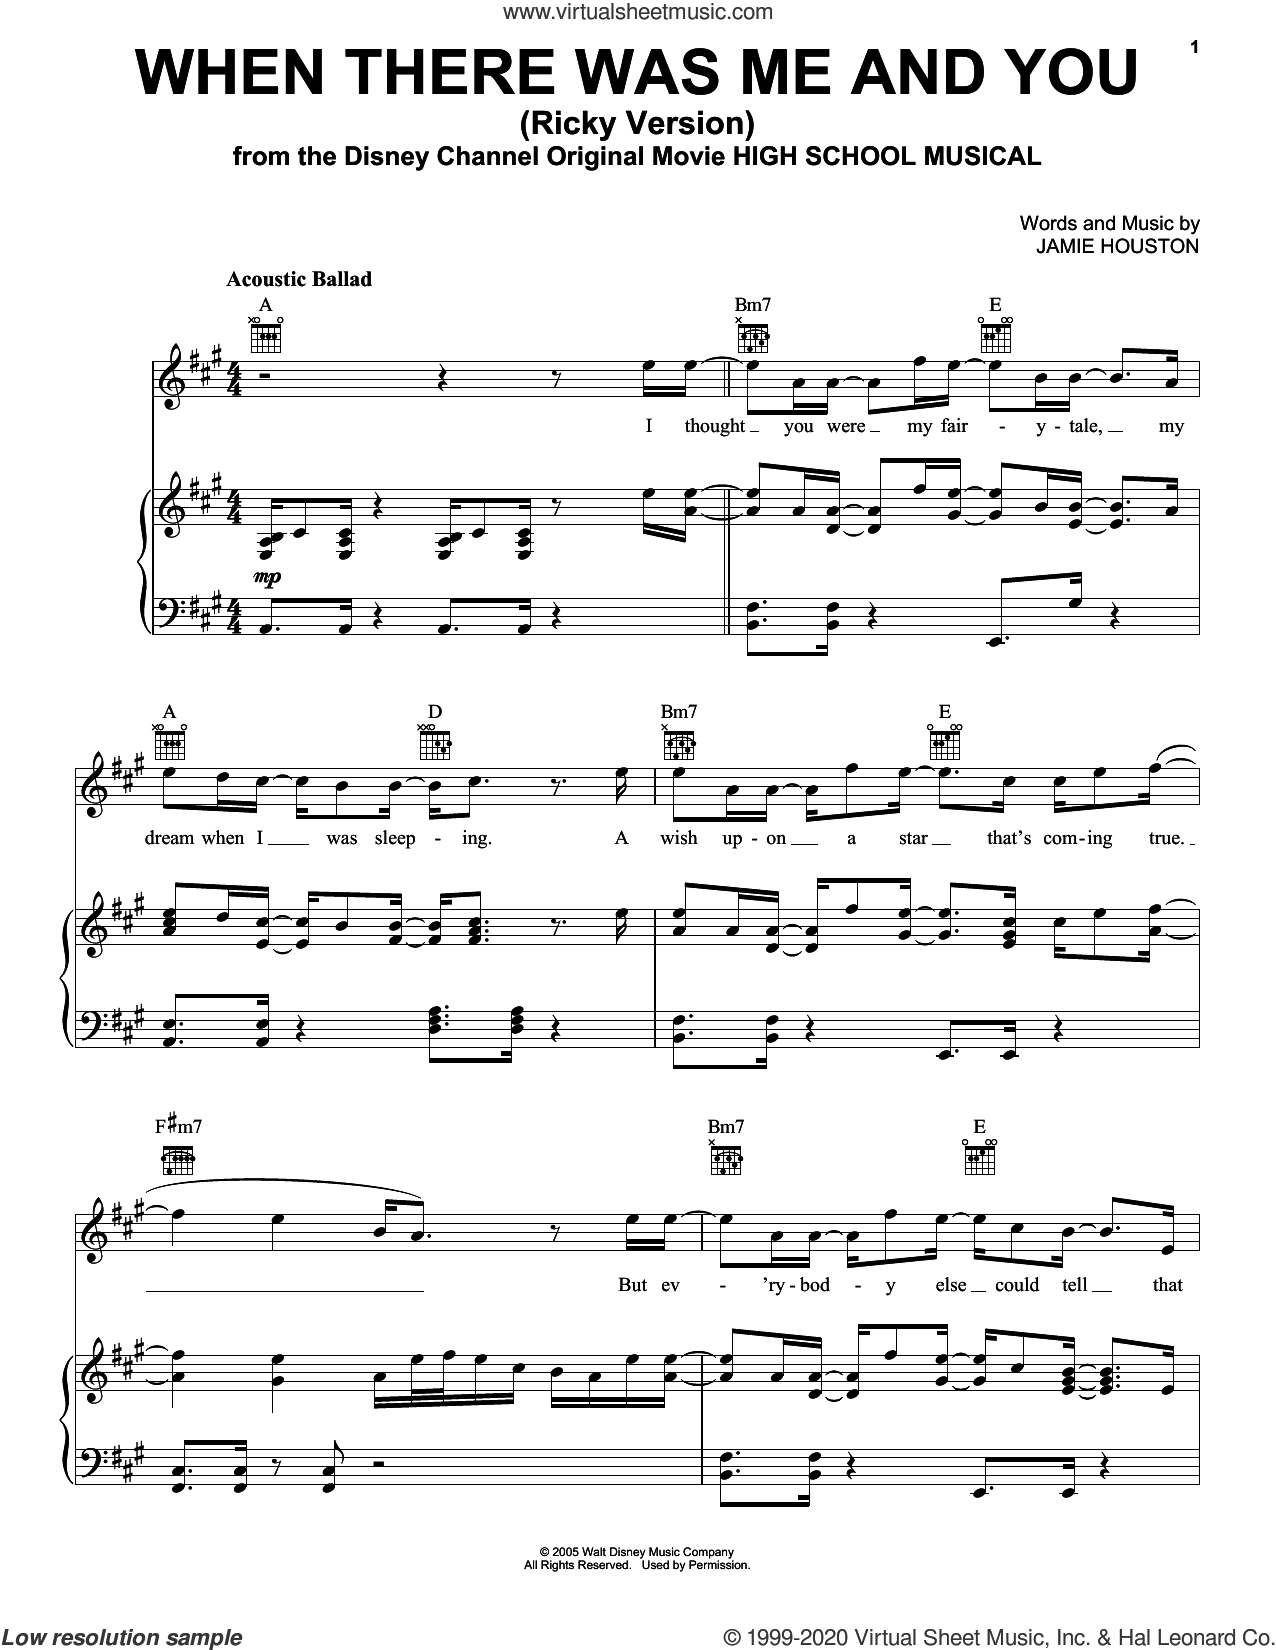 When There Was Me And You (from High School Musical: The Musical: The Series) sheet music for voice, piano or guitar by Joshua Bassett and Jamie Houston, intermediate skill level